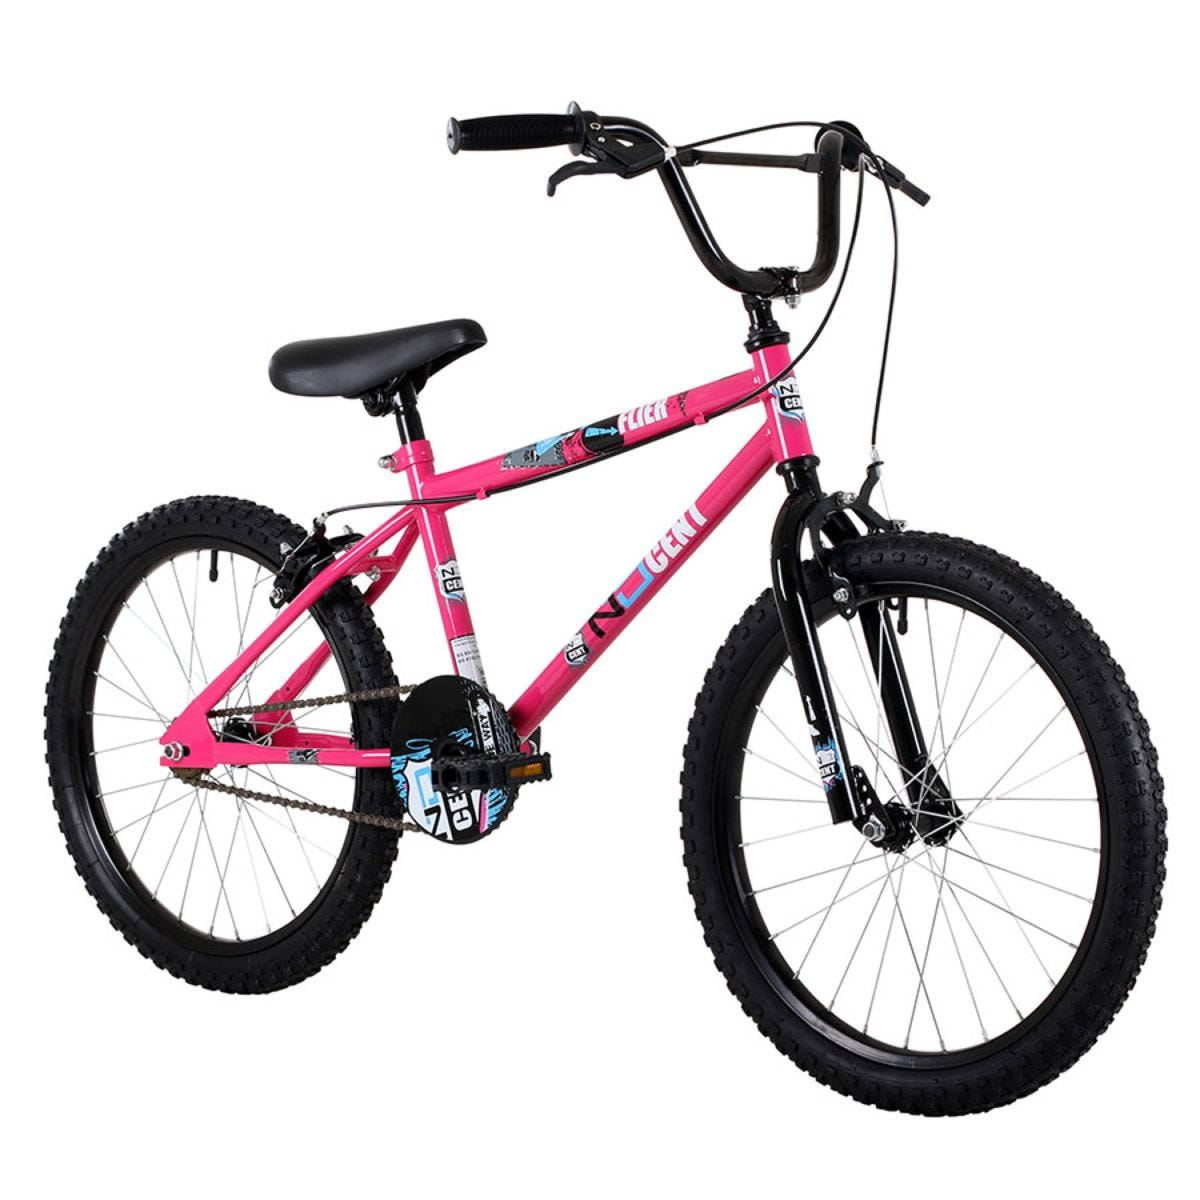 Ndcent Flier BMX Girls Bike 20-Inch - Pink